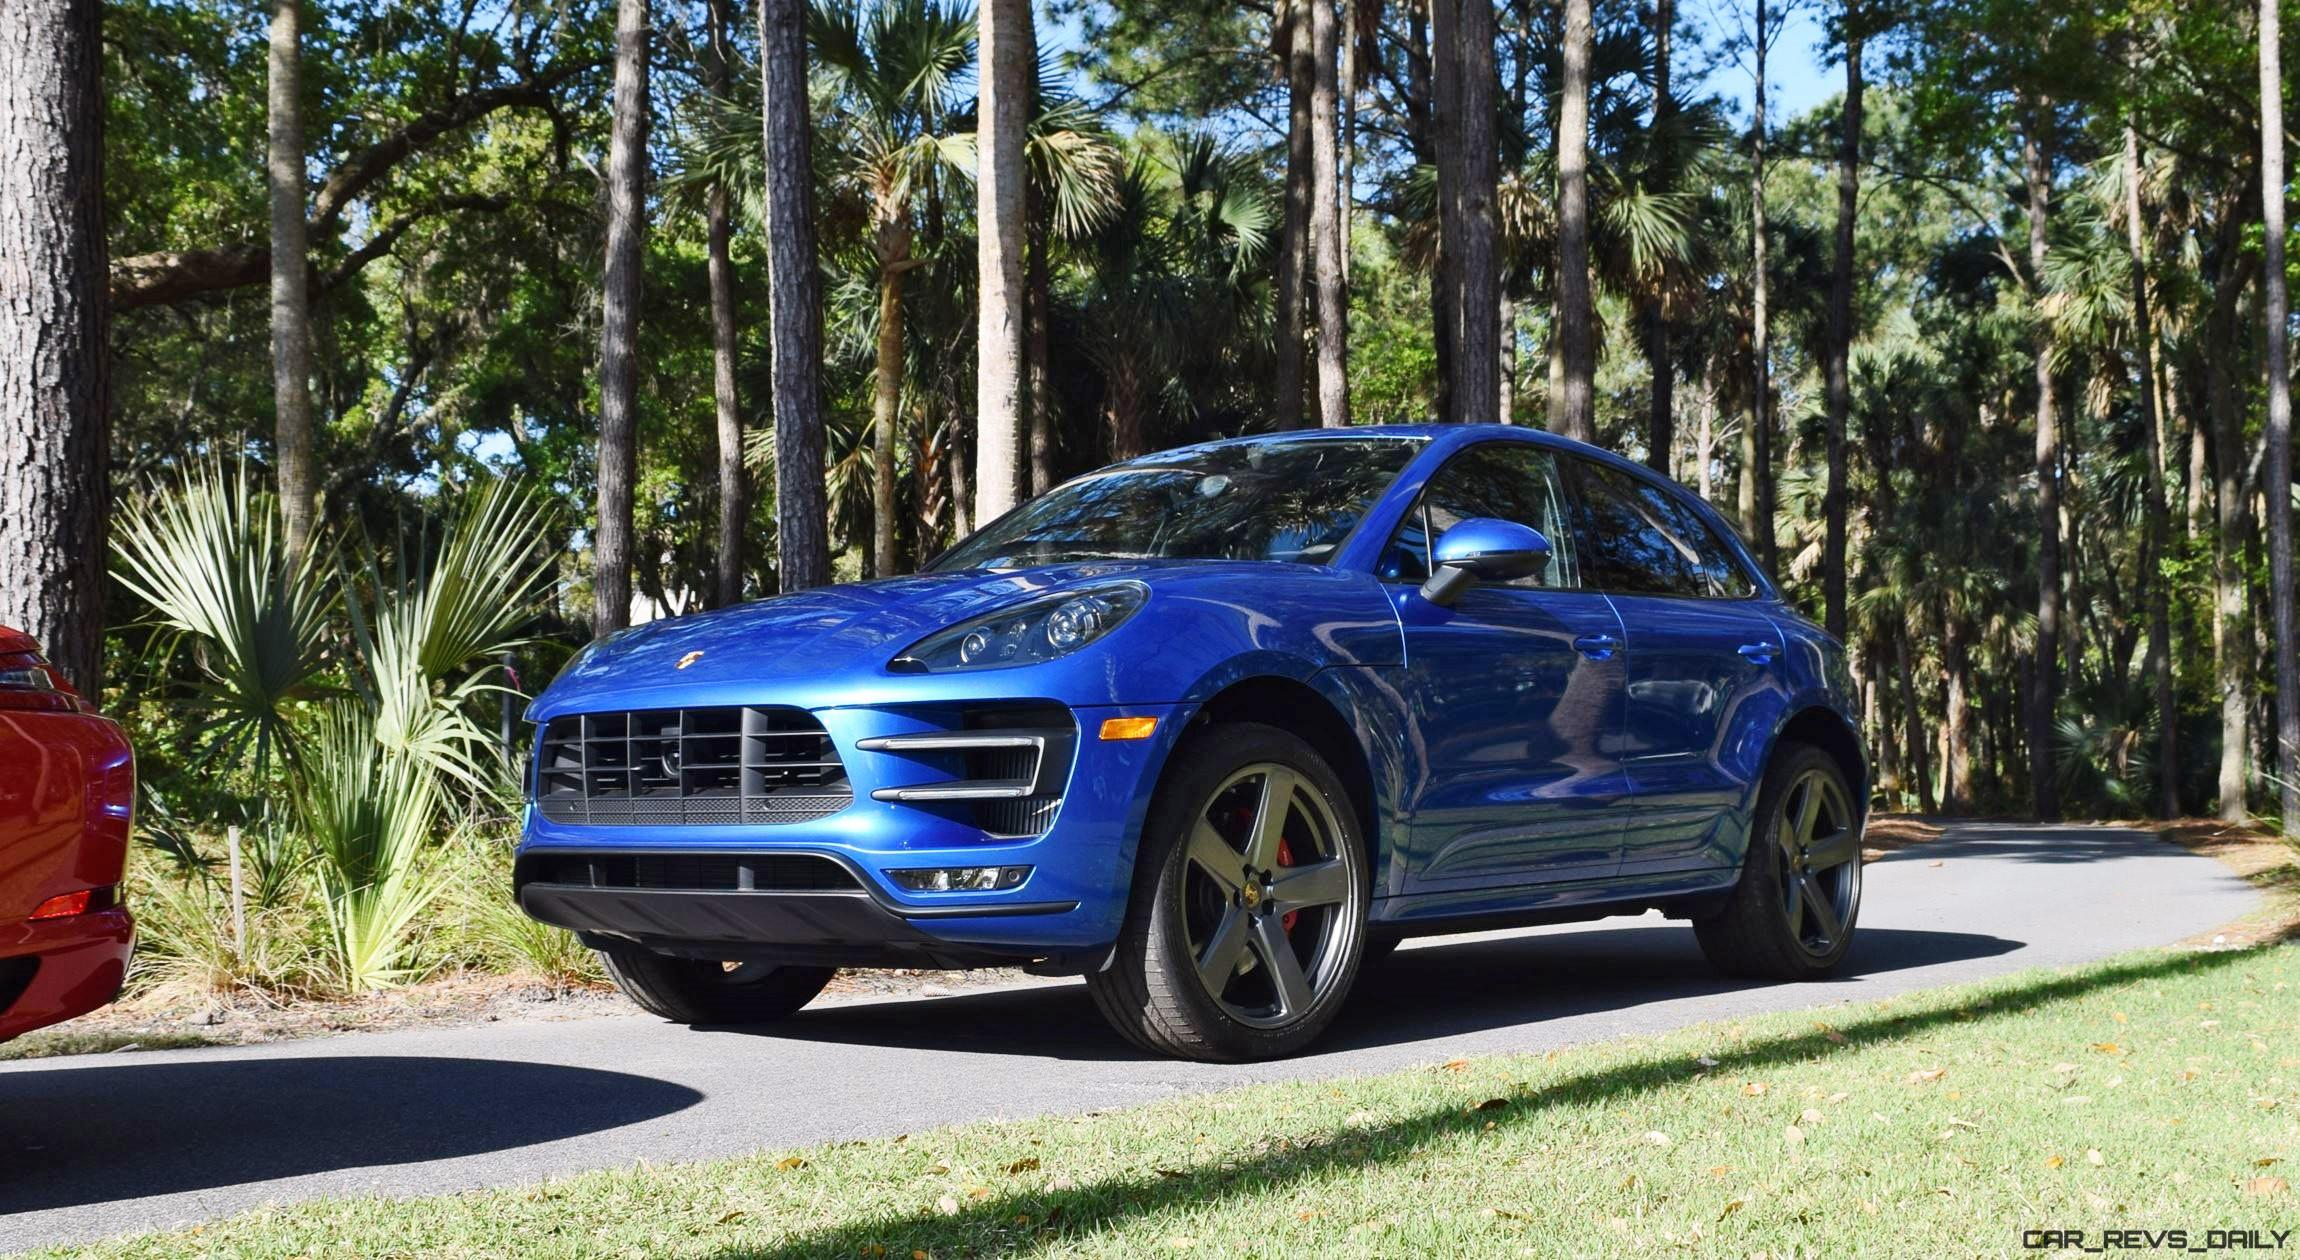 Kiawah 2016 Highlights 2016 Porsche Macan Turbo In Sapphire Blue